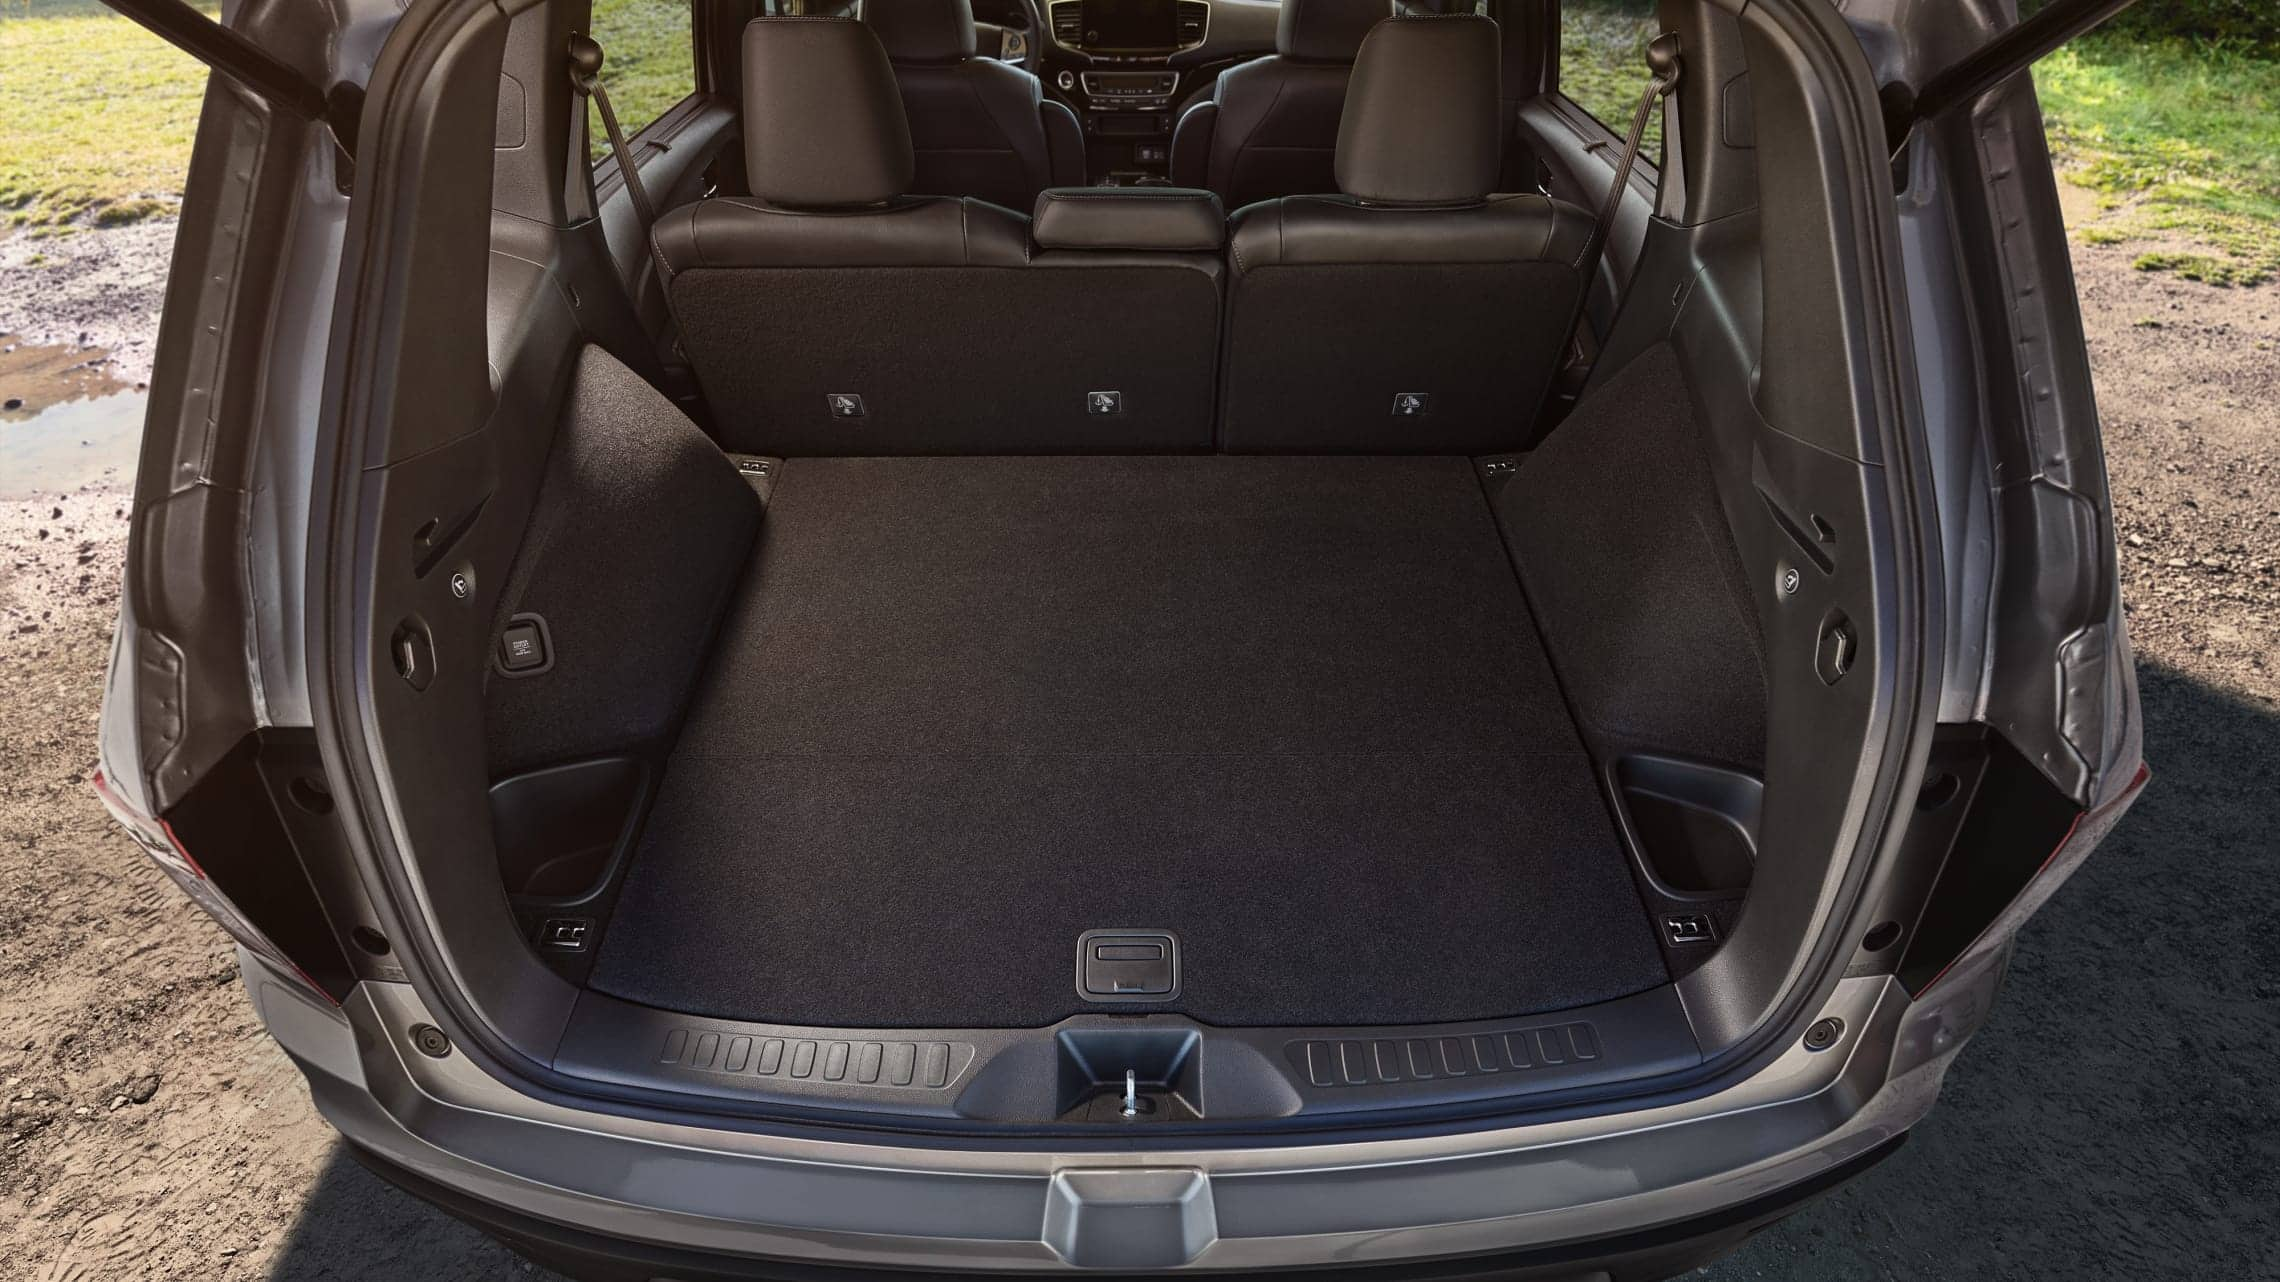 2020 Honda Passport Elite cargo area in Black Leather displaying underfloor storage compartments with carpeted wheel arches.